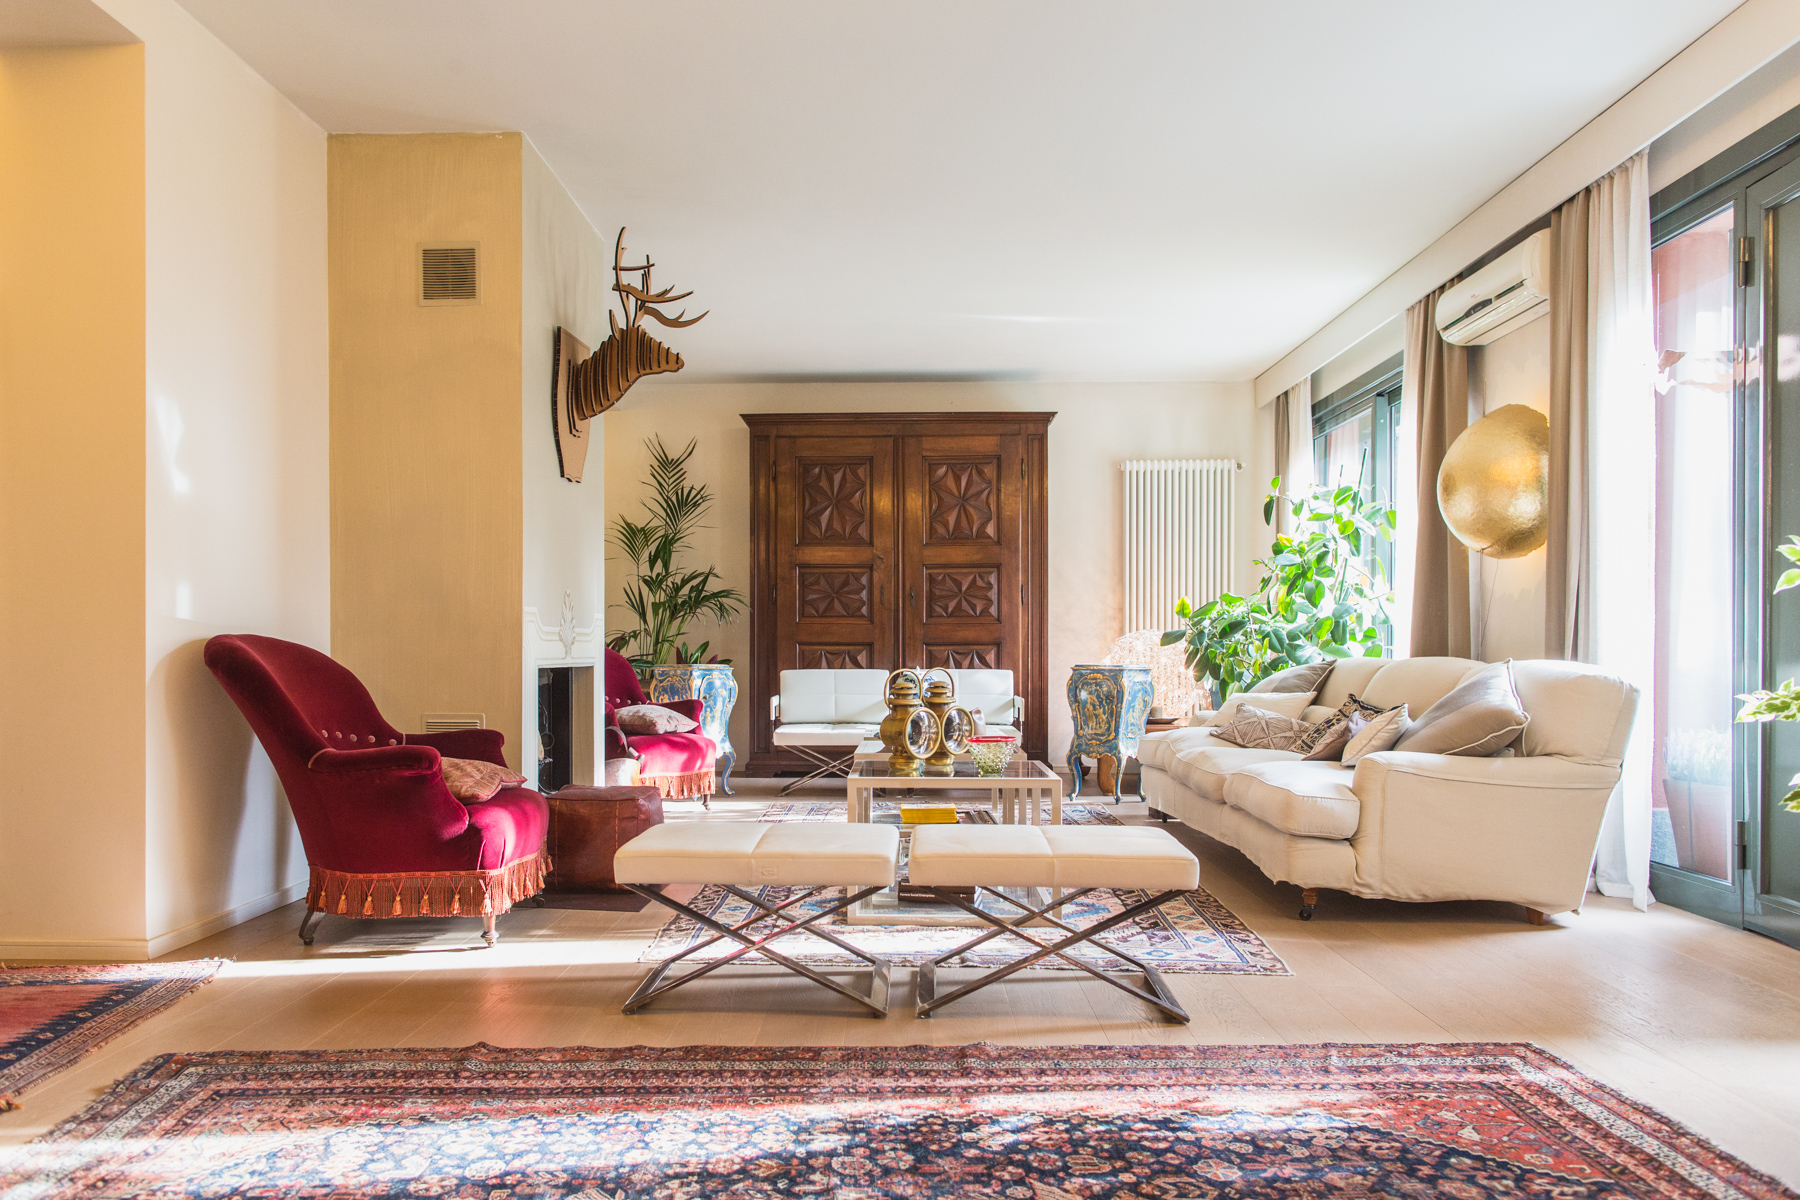 Single Family Home for Sale at Refined apartment in the pre-hill of Turin Via Luisa del Carretto Torino, Turin 10131 Italy